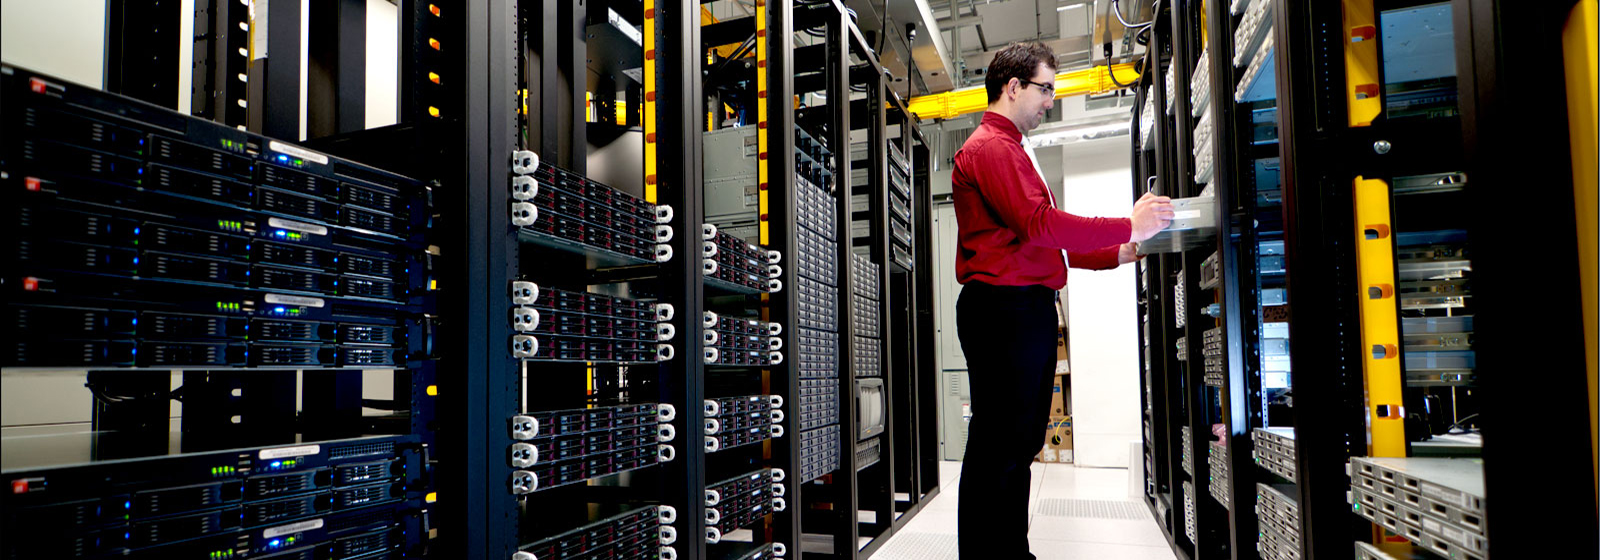 SUPERIOR PROTECTION TO DATA CENTRES, IT NETWORKS & SERVERS